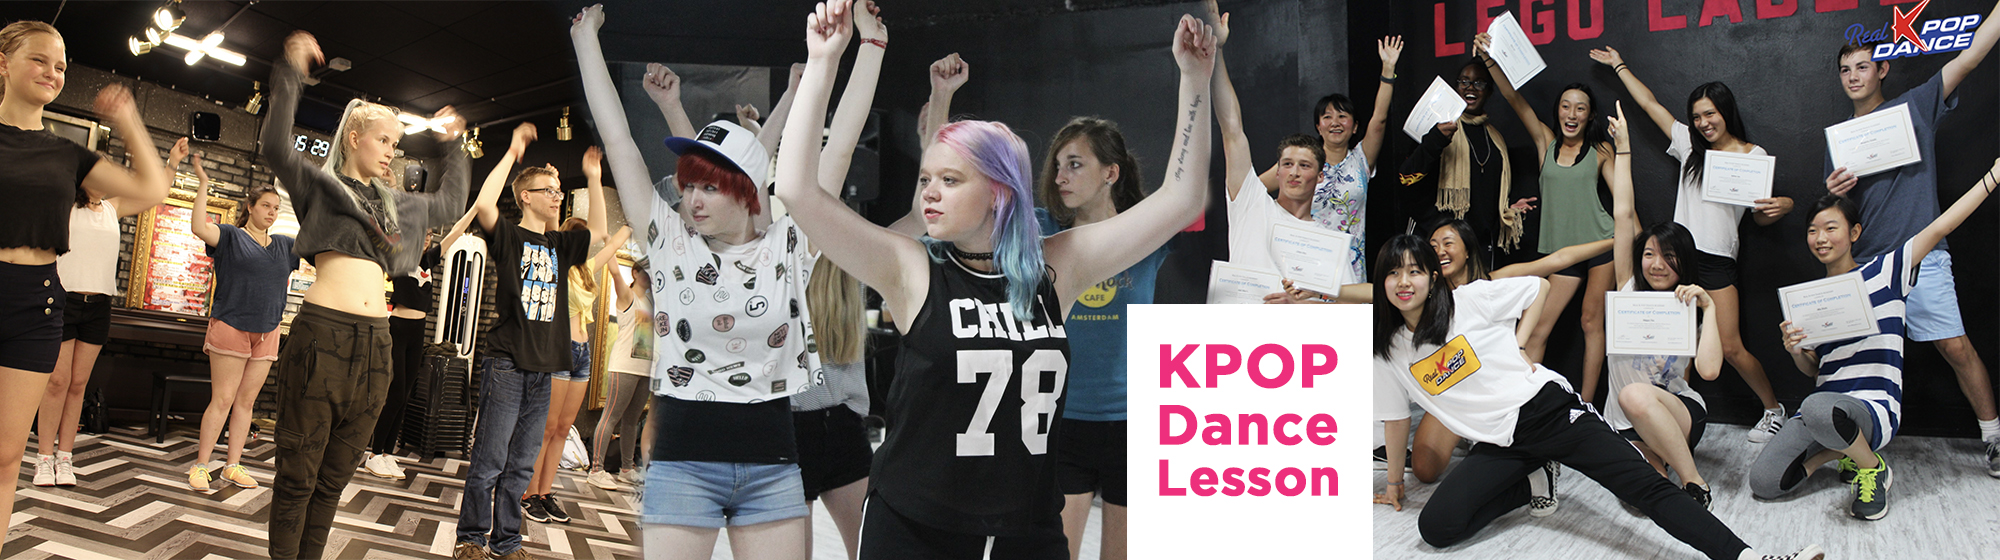 how to learn kpop dance at home